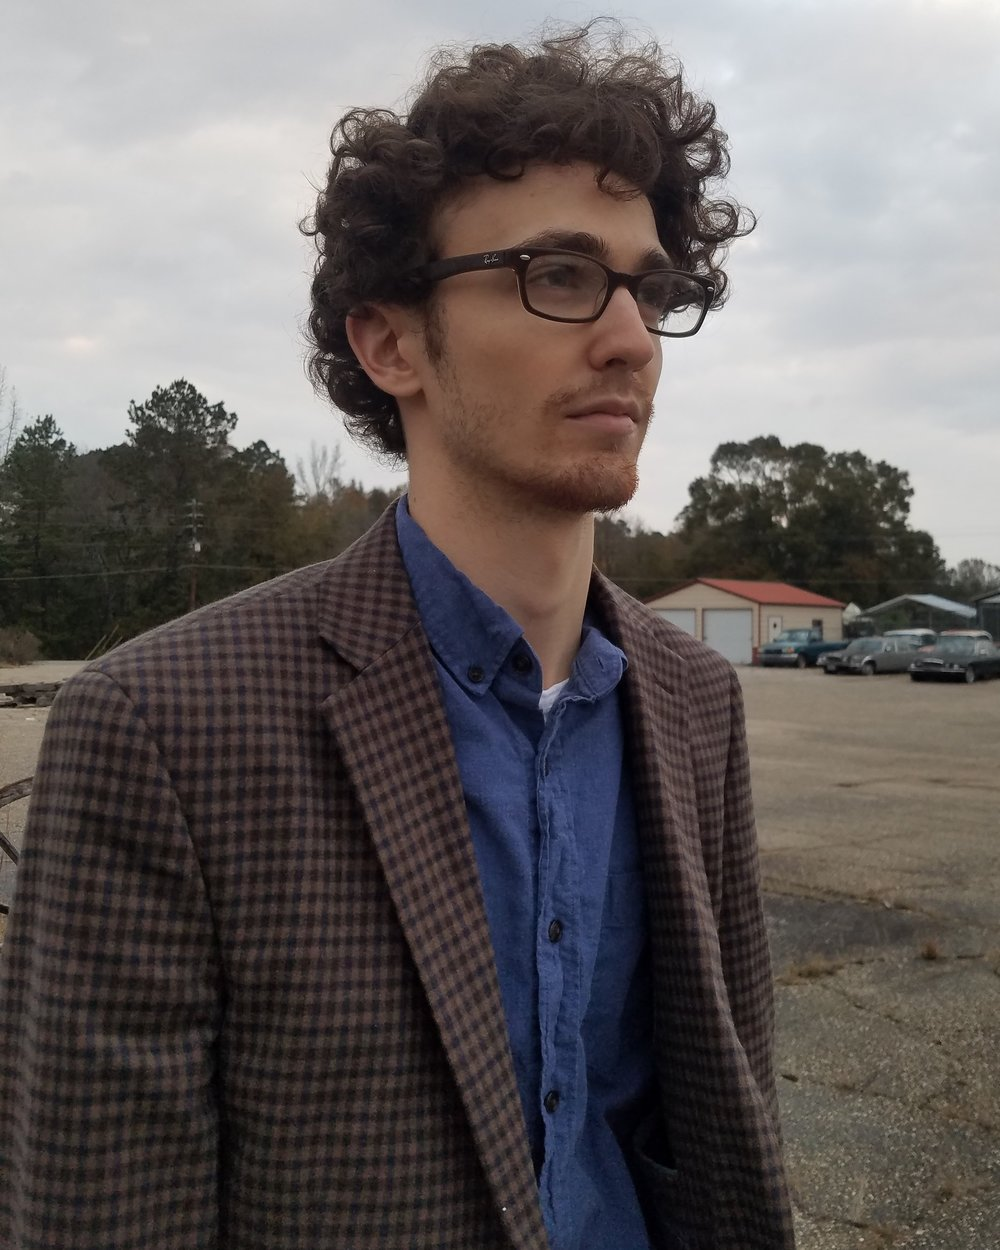 Joseph Sigurdson's work has appeared in  Jelly Bucket ,  Allegheny Review ,  Gandy Dancer ,  Great Lake Review , and elsewhere. He won a College Prize from The Academy of American Poets in 2018. He's from Buffalo, New York and is currently a graduate student in Mississippi.